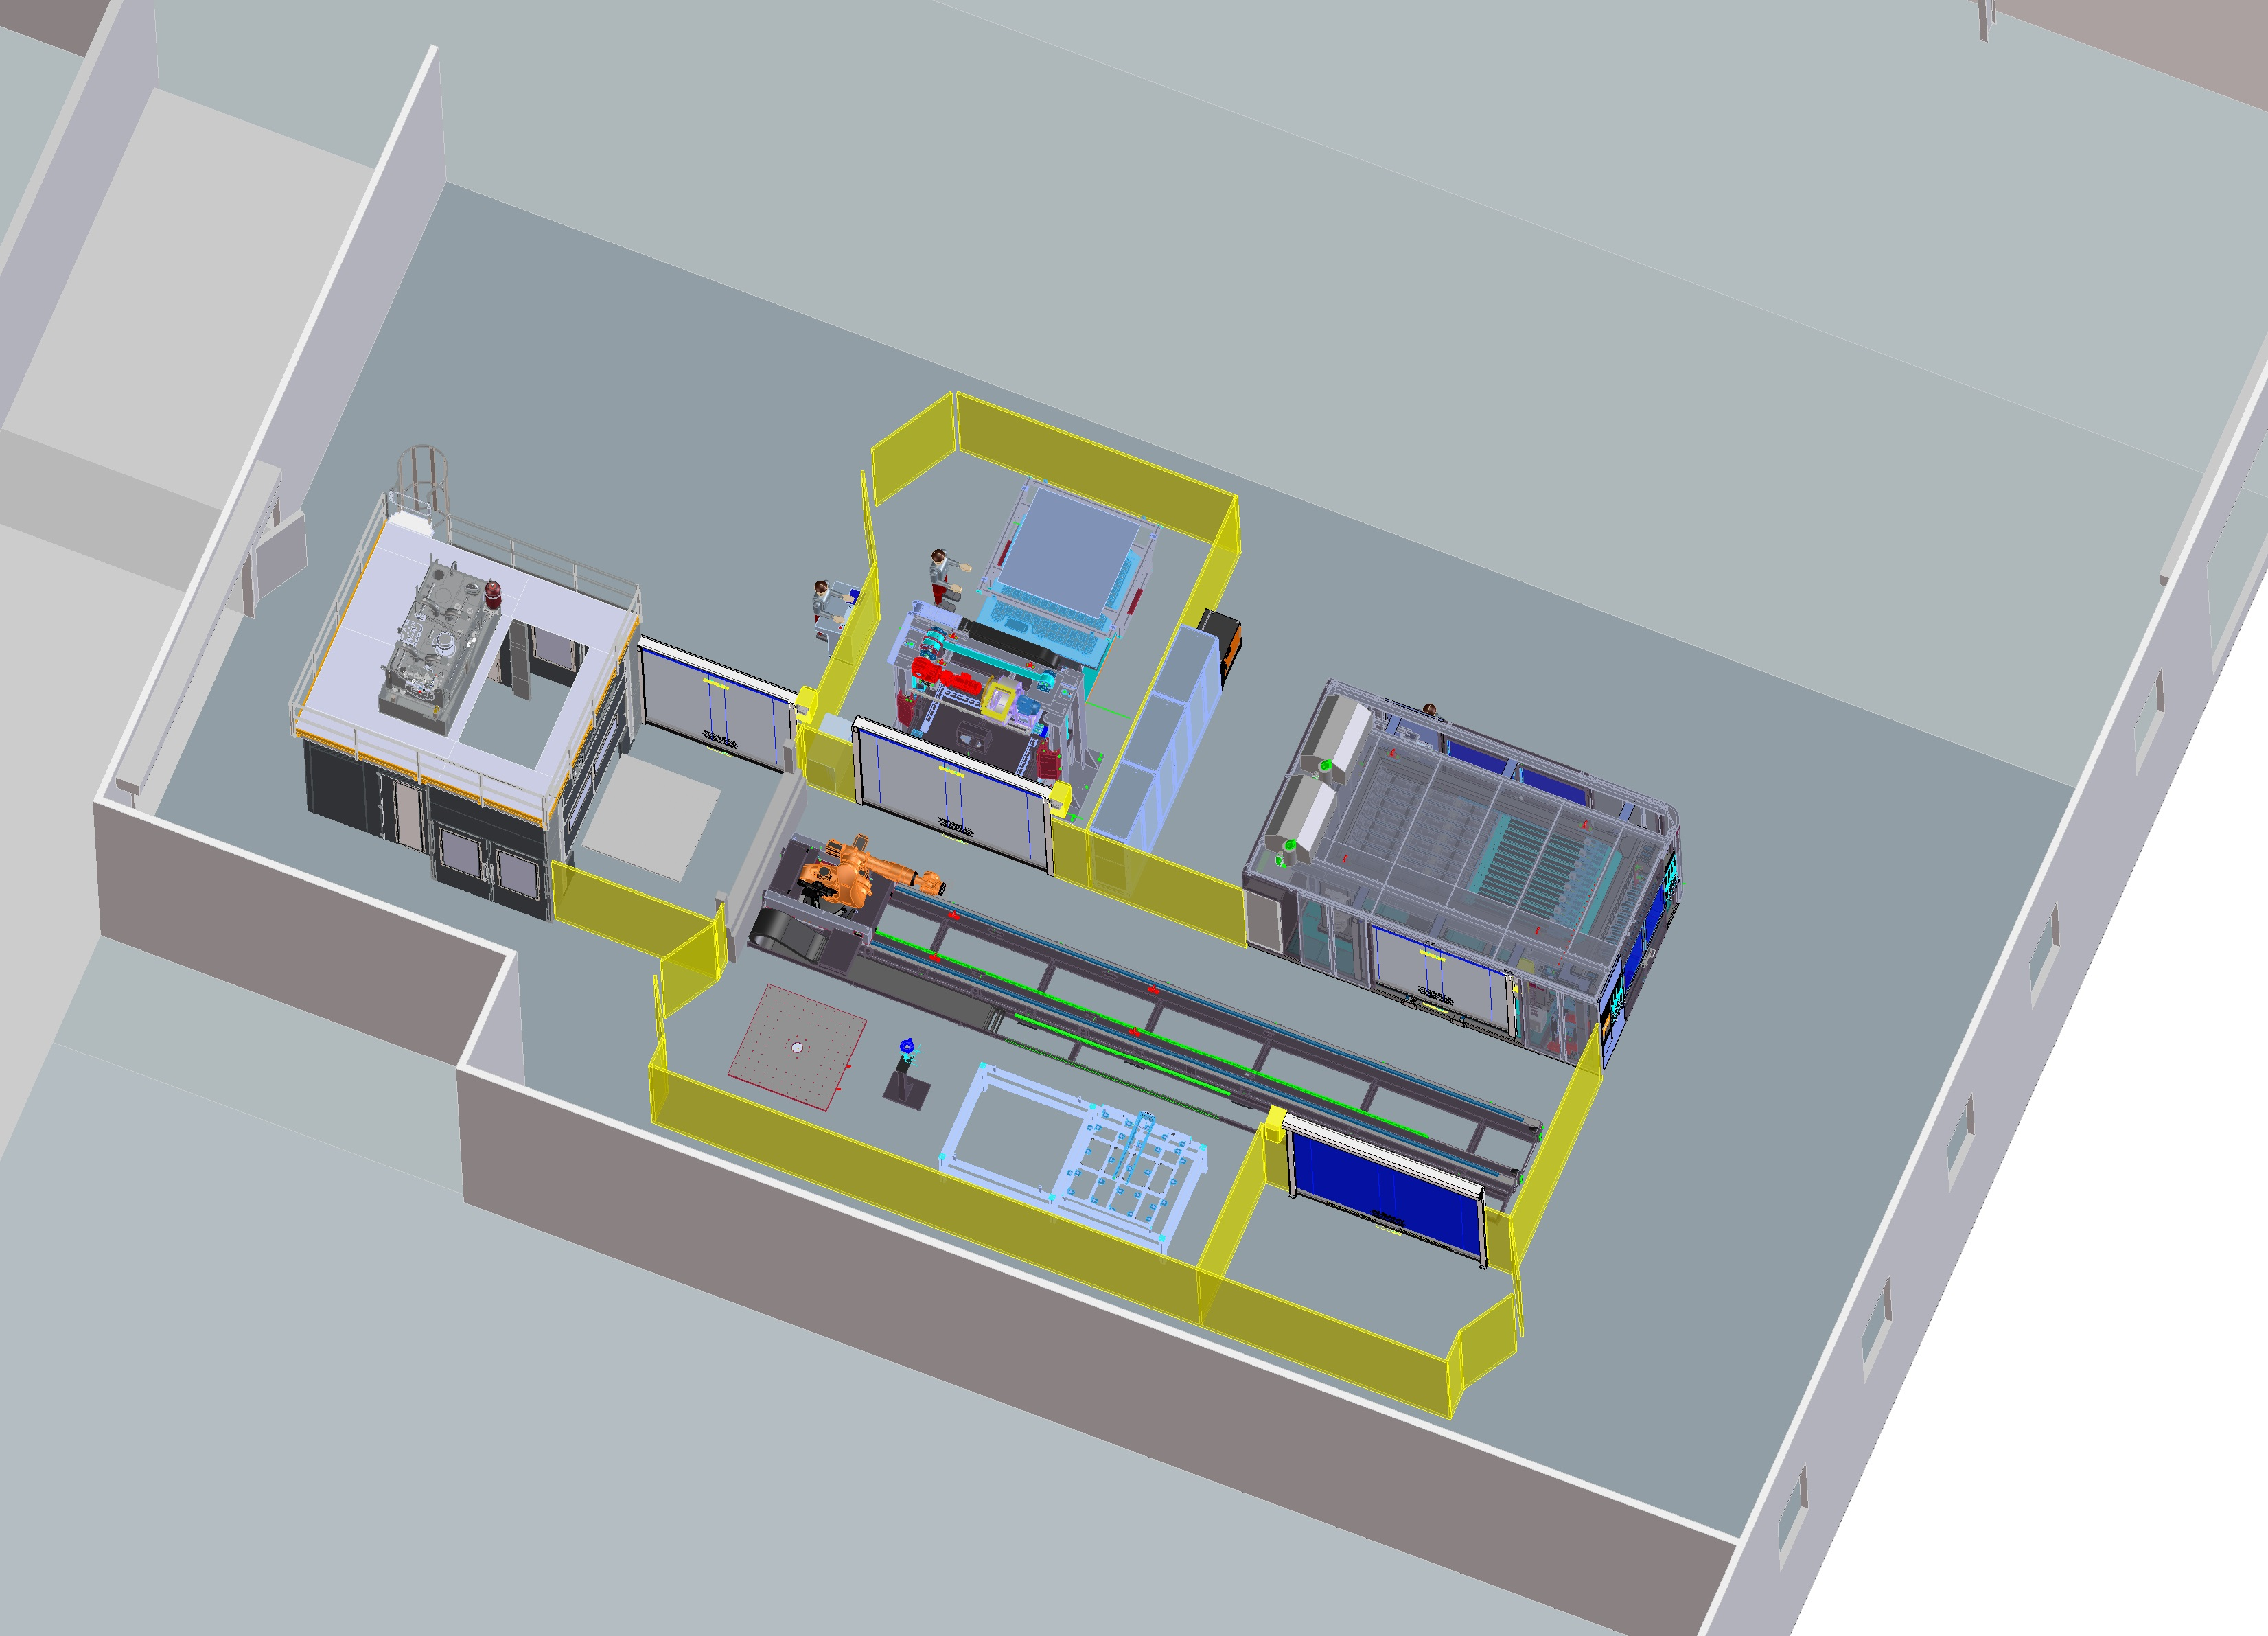 isometric view of new testlab facility